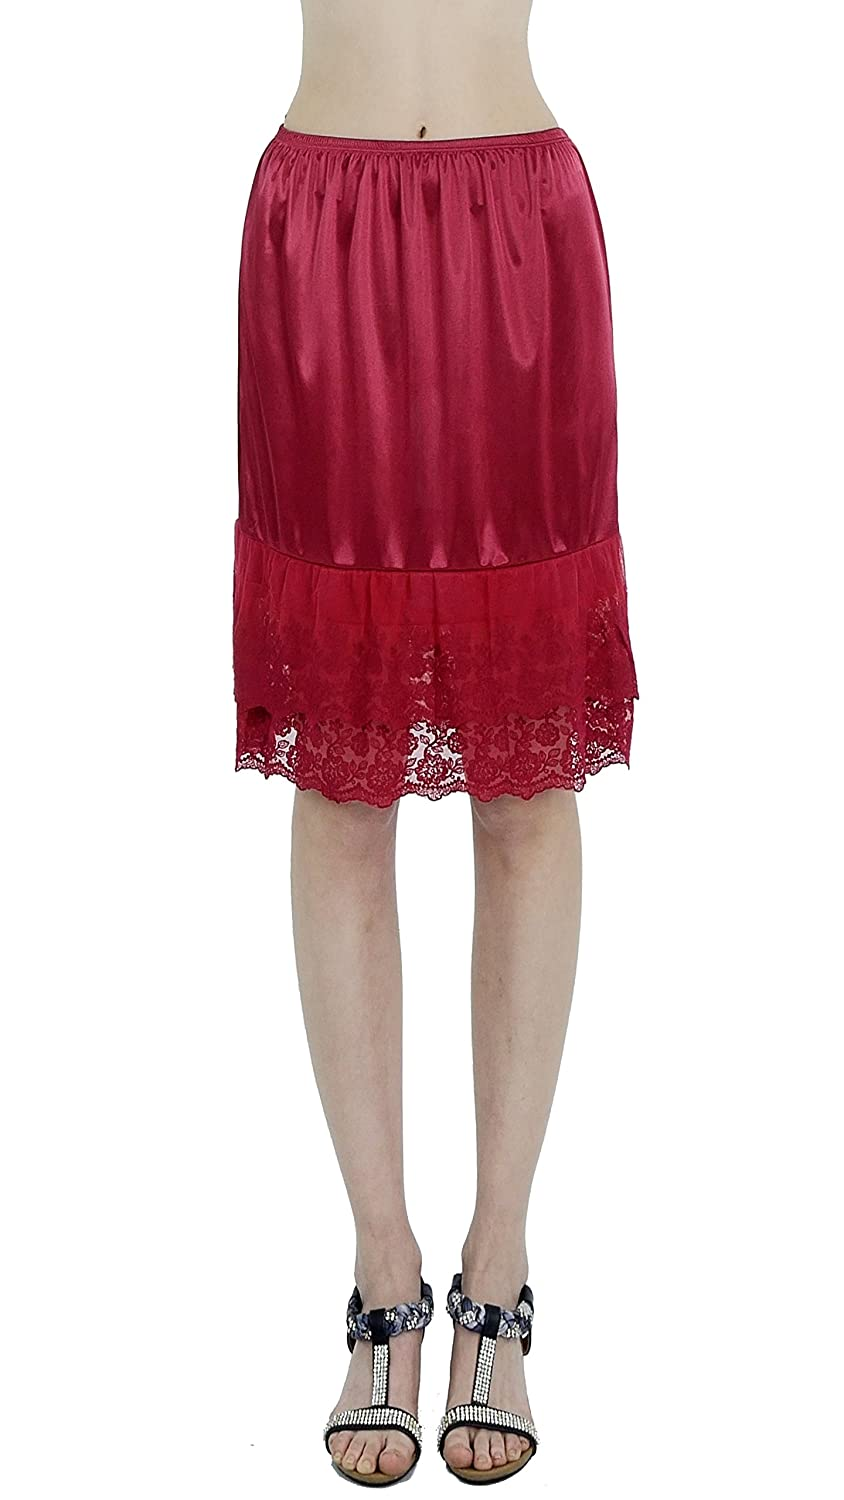 Melody Double Lace Half Slip Satin Skirt Extender- 21